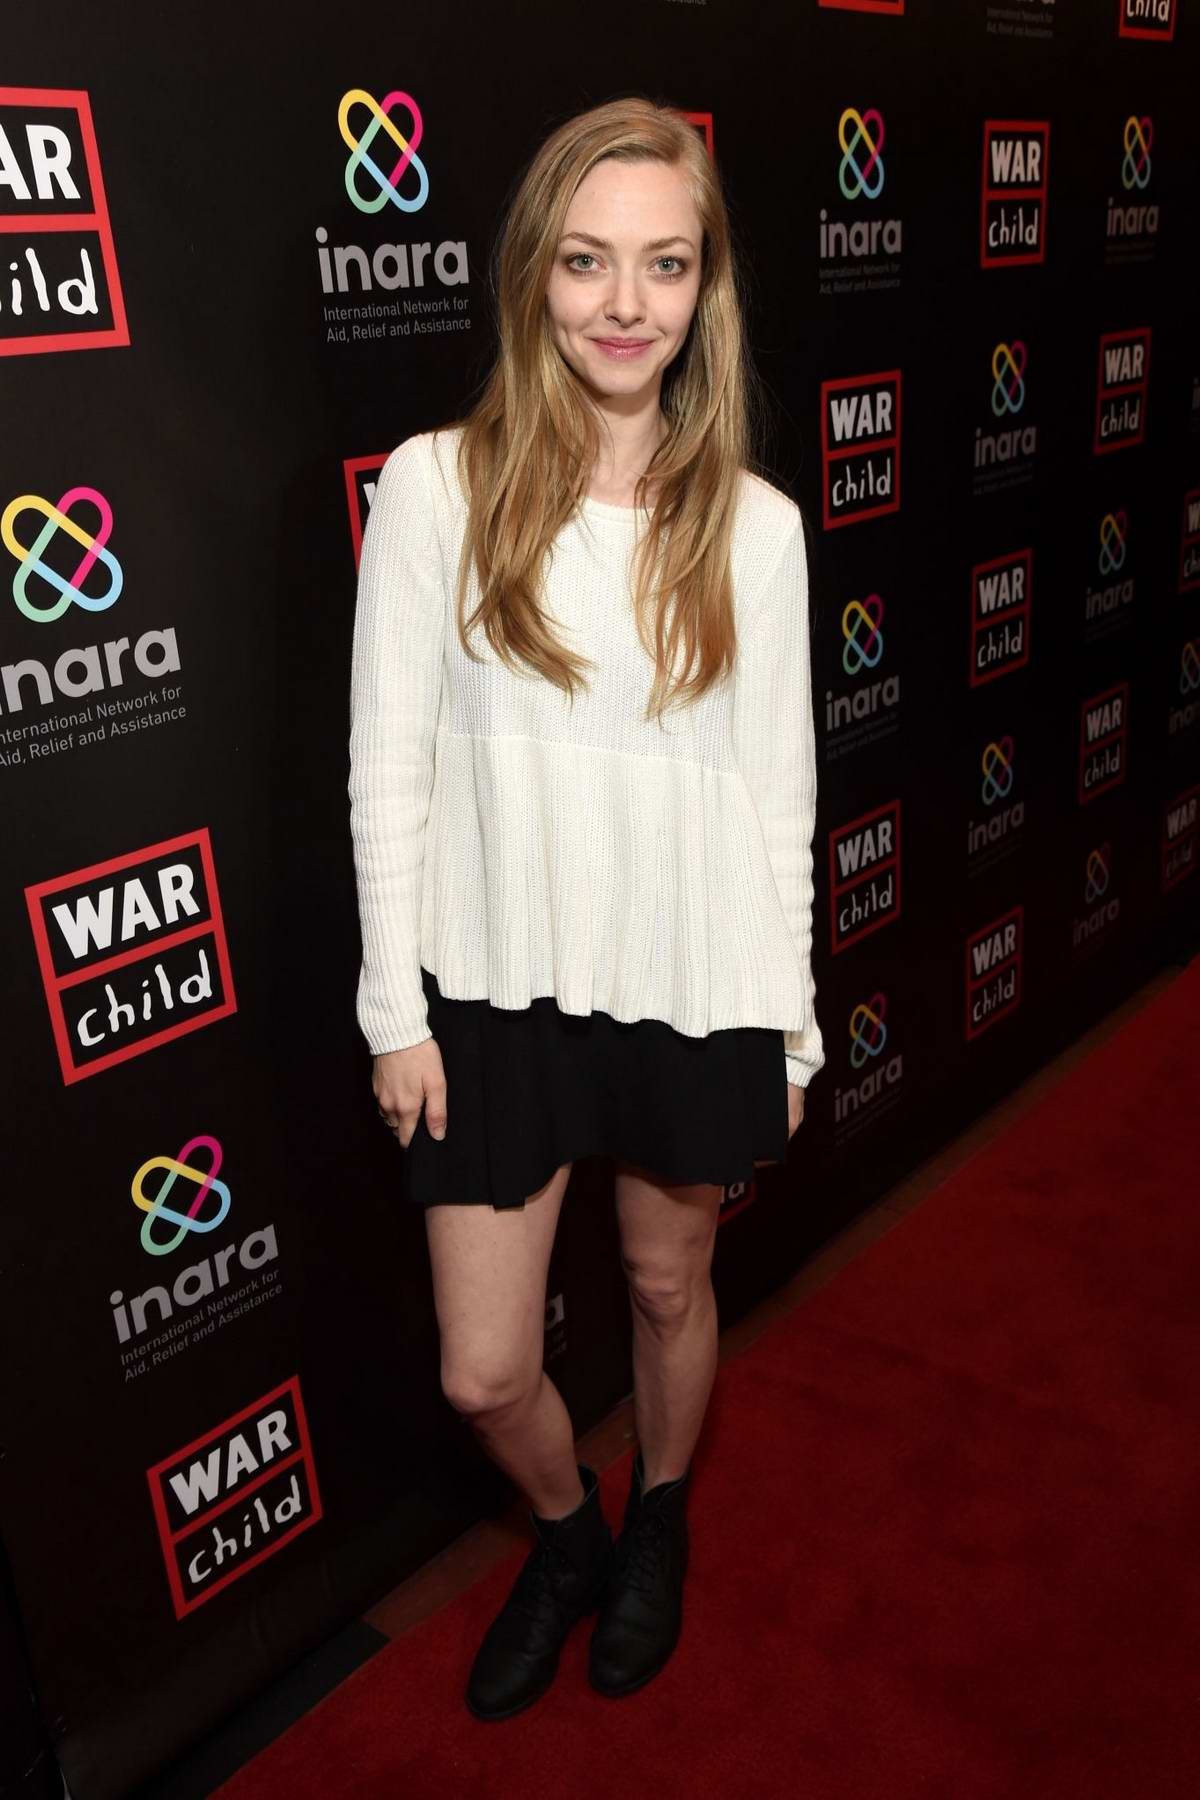 Amanda Seyfried attends the 'Good For'A Laugh' Comedy Benefit in support of children affected by war at Largo in Los Angeles